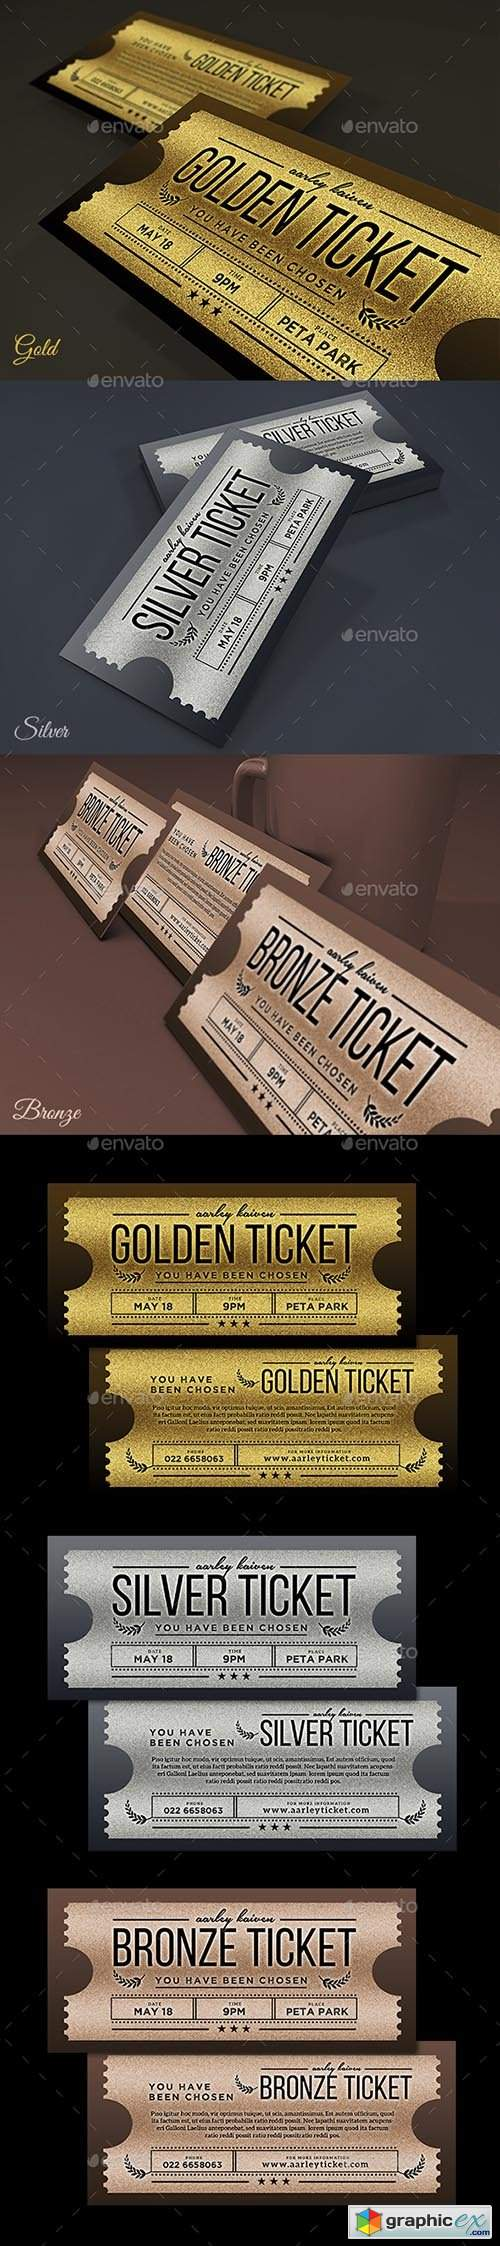 Multipurpose Golden / Silver Ticket Invitation